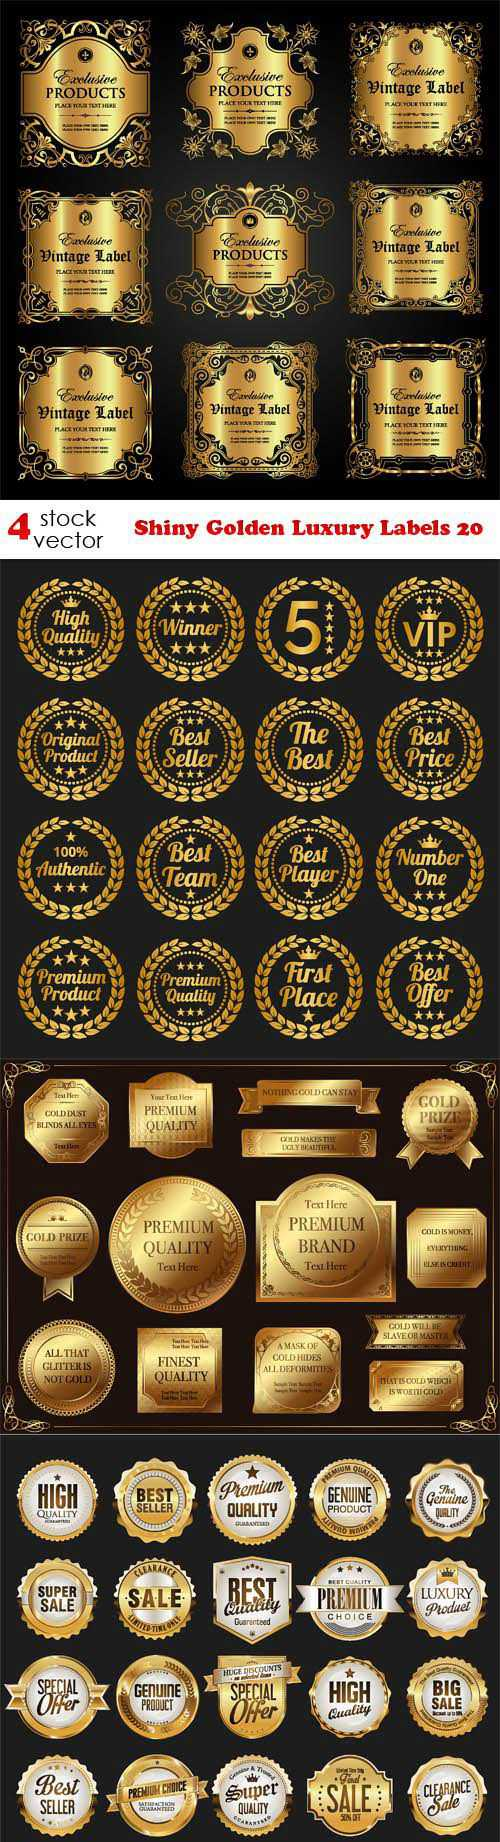 Vectors – Shiny Golden Luxury Labels 20